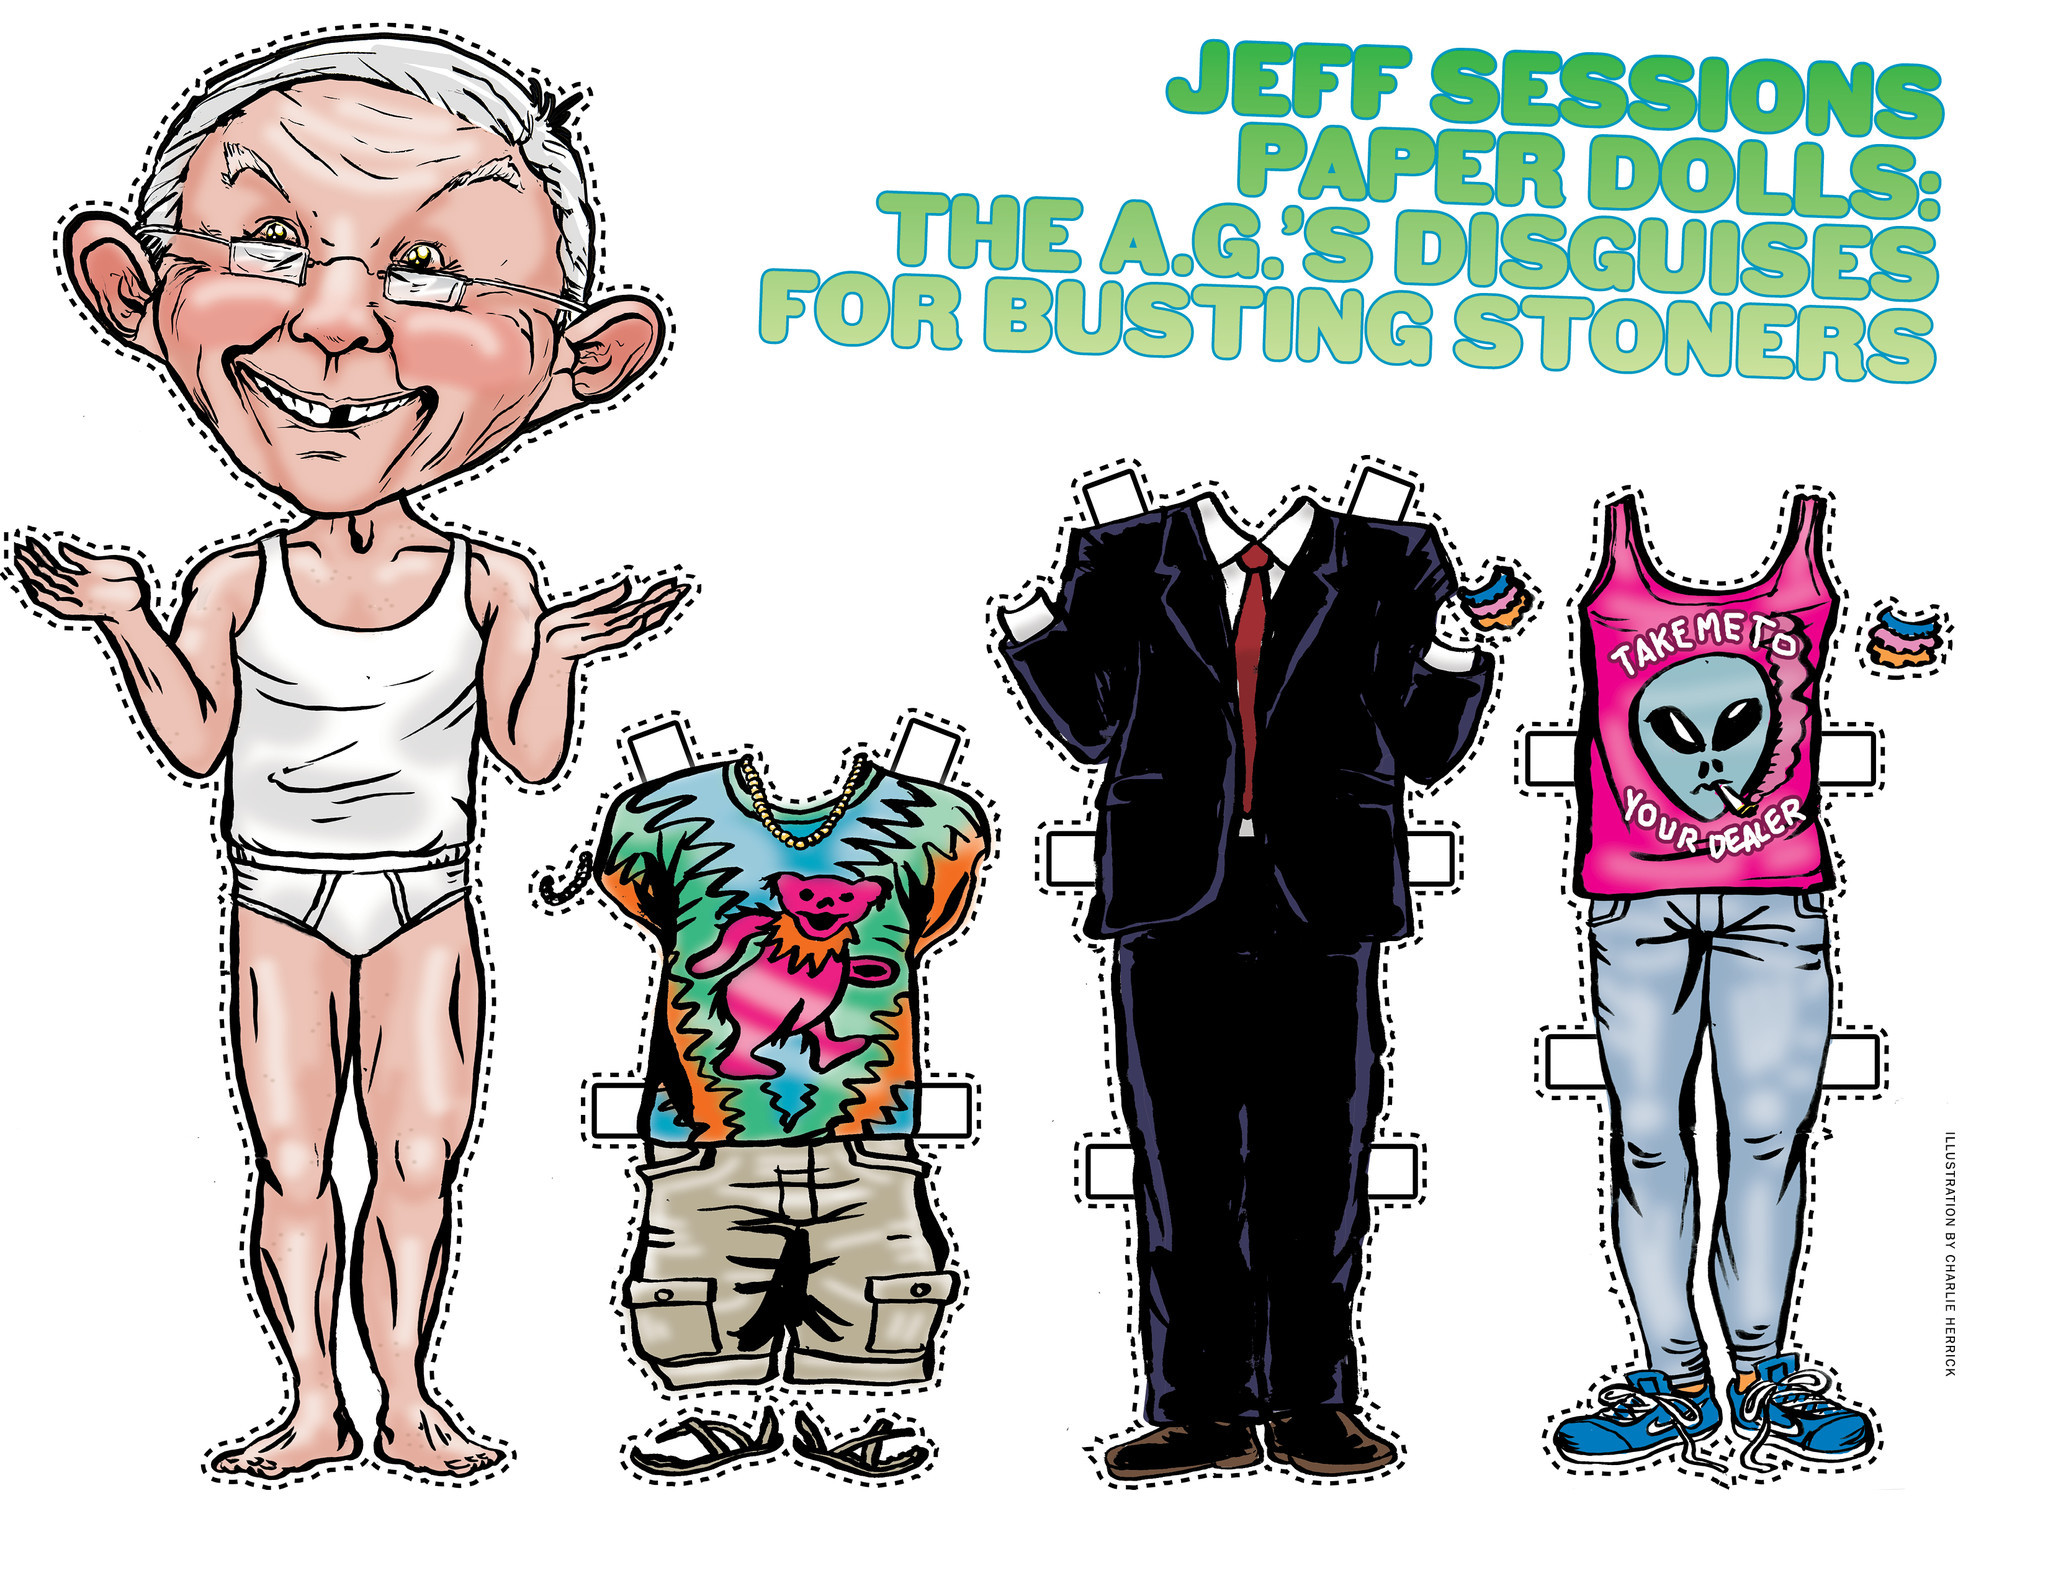 Jeff Sessions Paper Dolls: The A.G.'s disguises for busting stoners